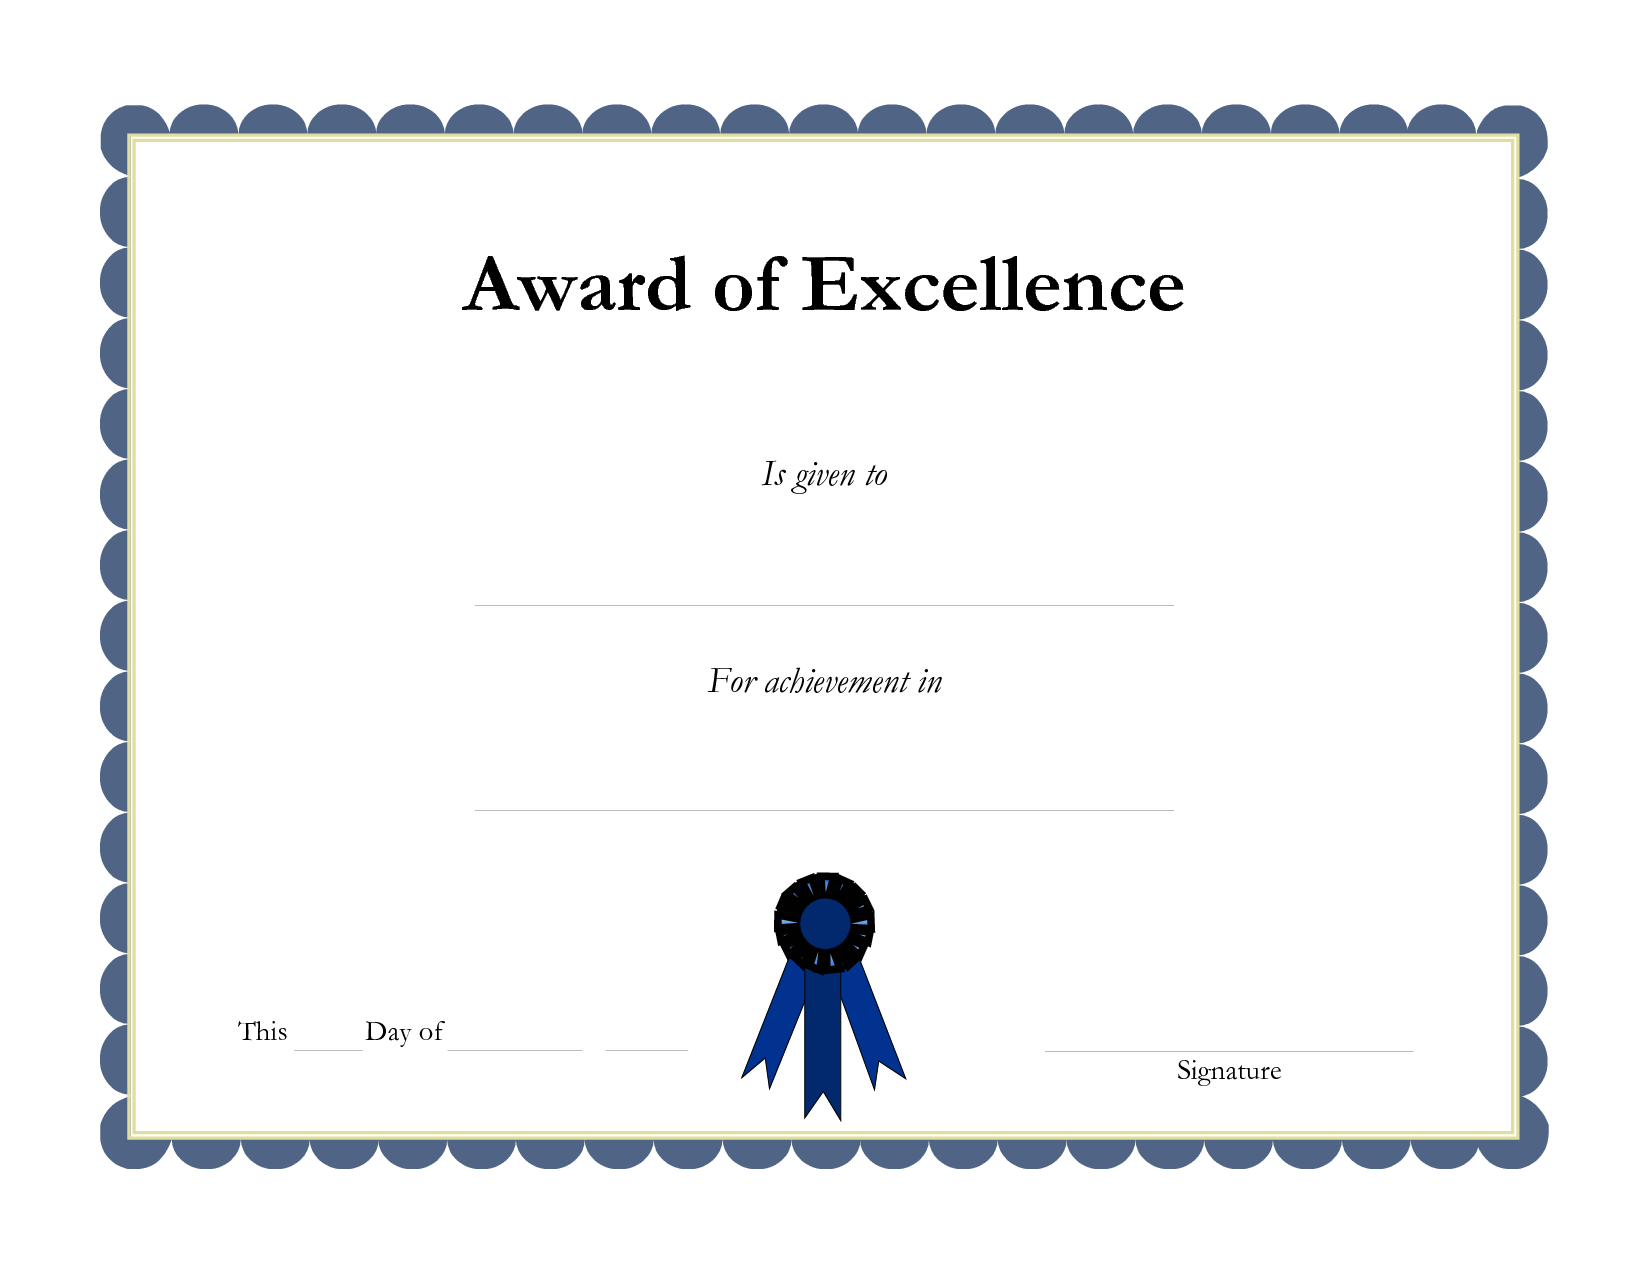 Award template certificate borders award of excellenceis given tofor achievement inthisday of signature